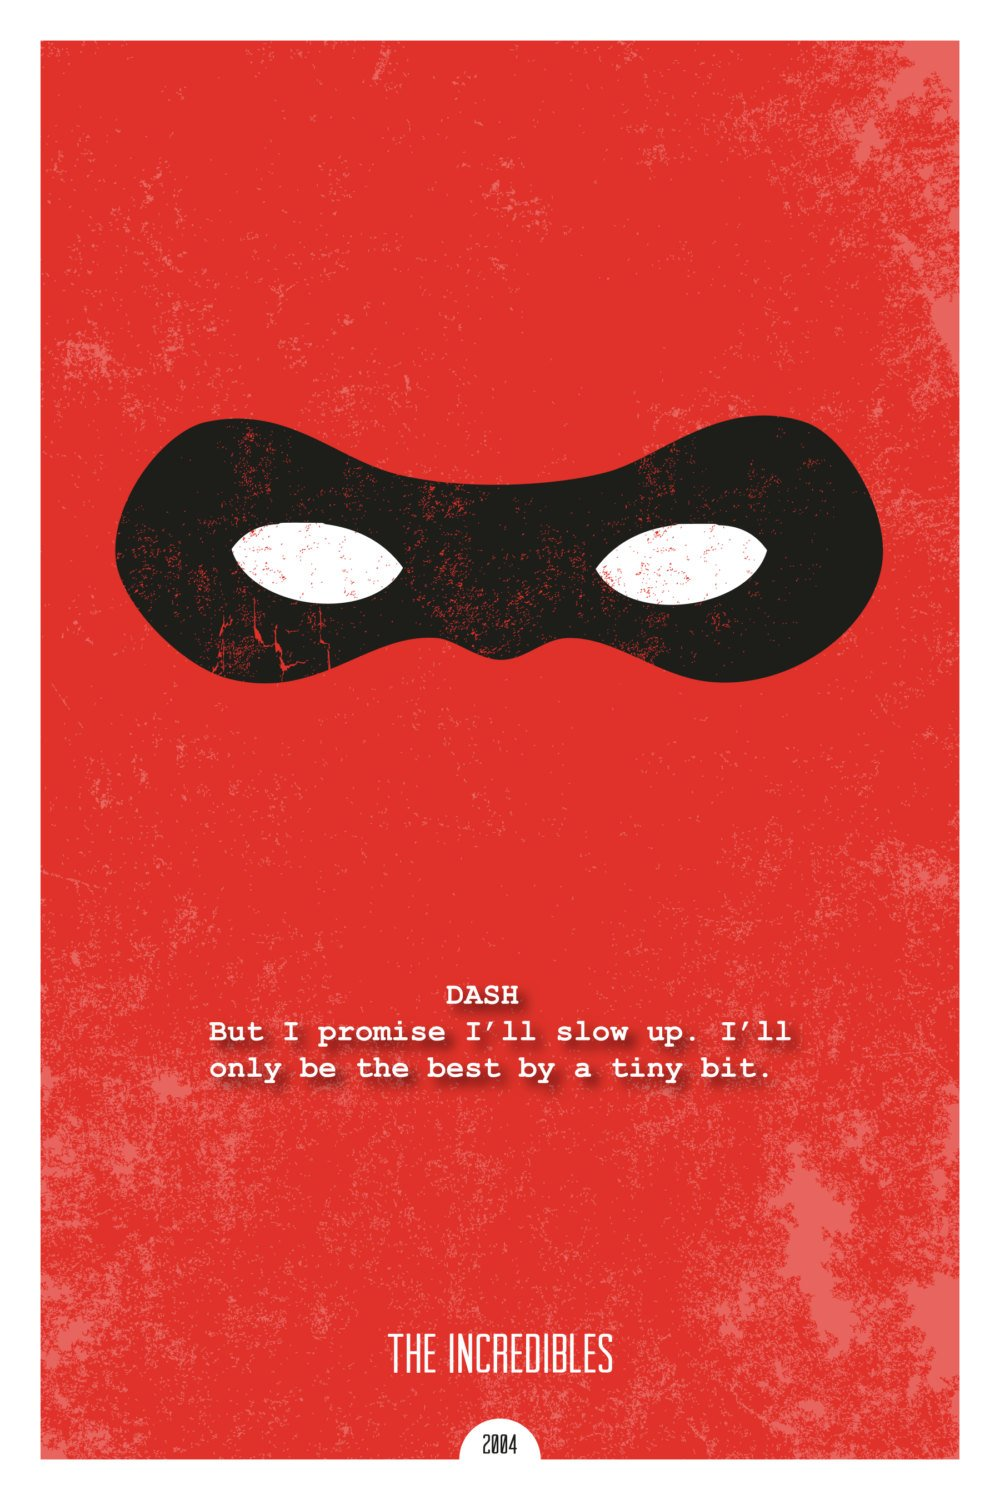 Quote Posters | Minimal Inspirational Pixar Movie Quote Posters Churchmag